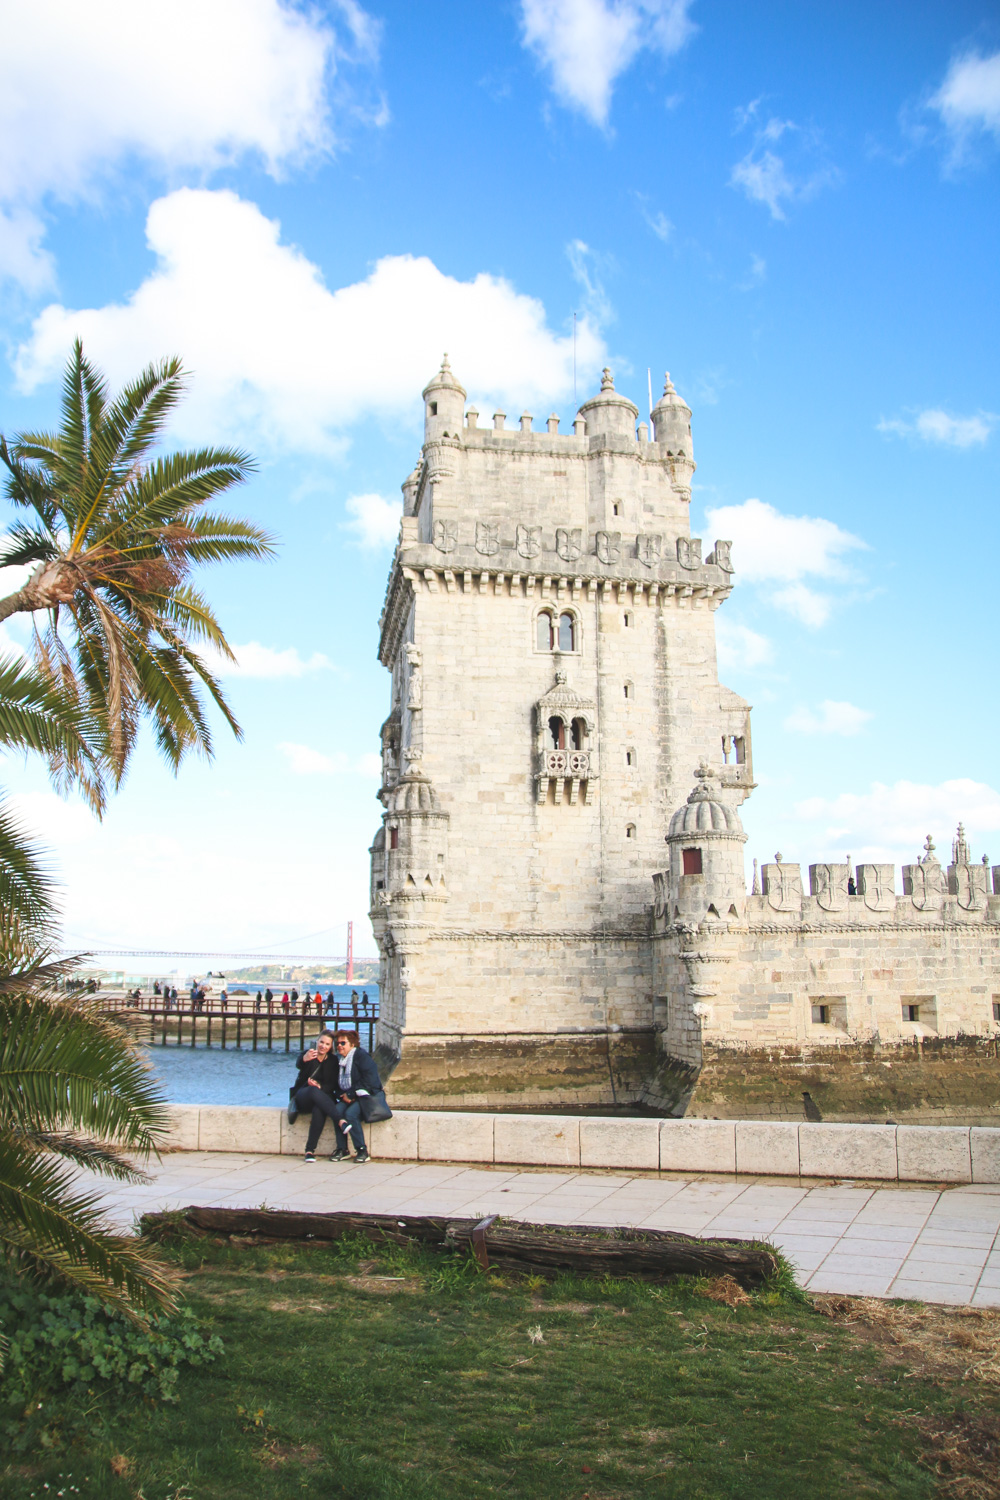 Belem Tower, Belem, Lisbon - Portugal